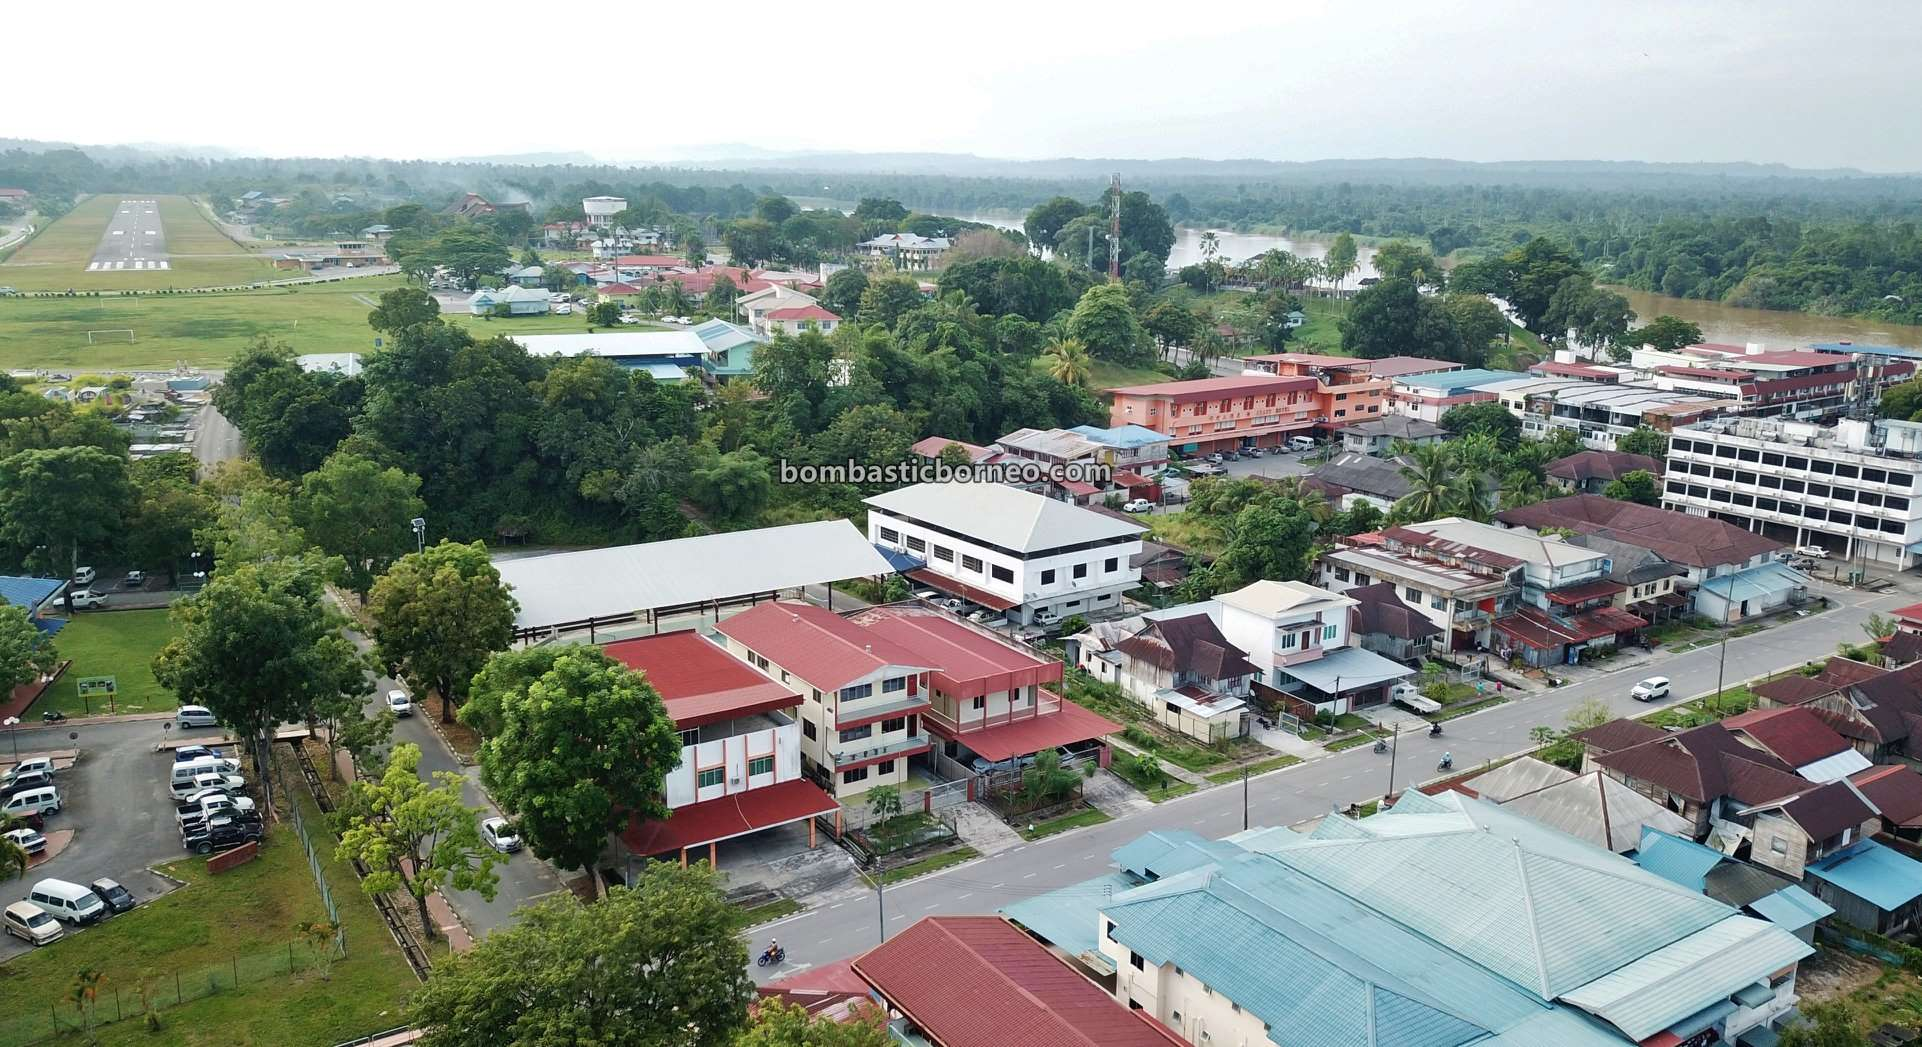 adventure, backpackers, exploration, Fort Hose, museum, Pasar tamu, traditional, local market, Tourism, tourist attraction, travel guide, Trans Borneo, 跨境婆罗洲砂拉越, 马来西亚马鲁帝